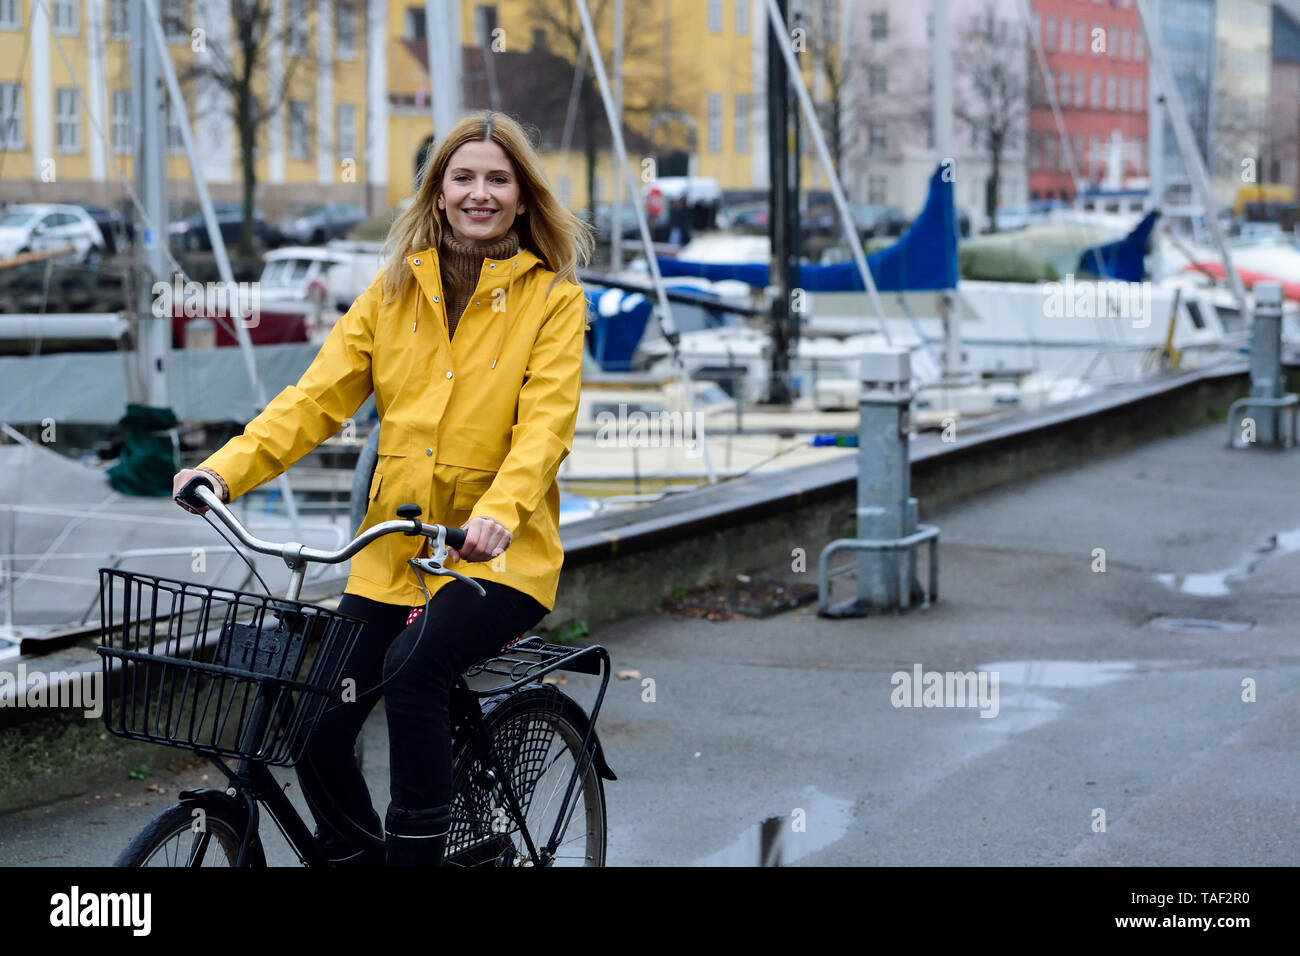 Denmark, Copenhagen, happy woman riding bicycle at city harbour in rainy weather - Stock Image